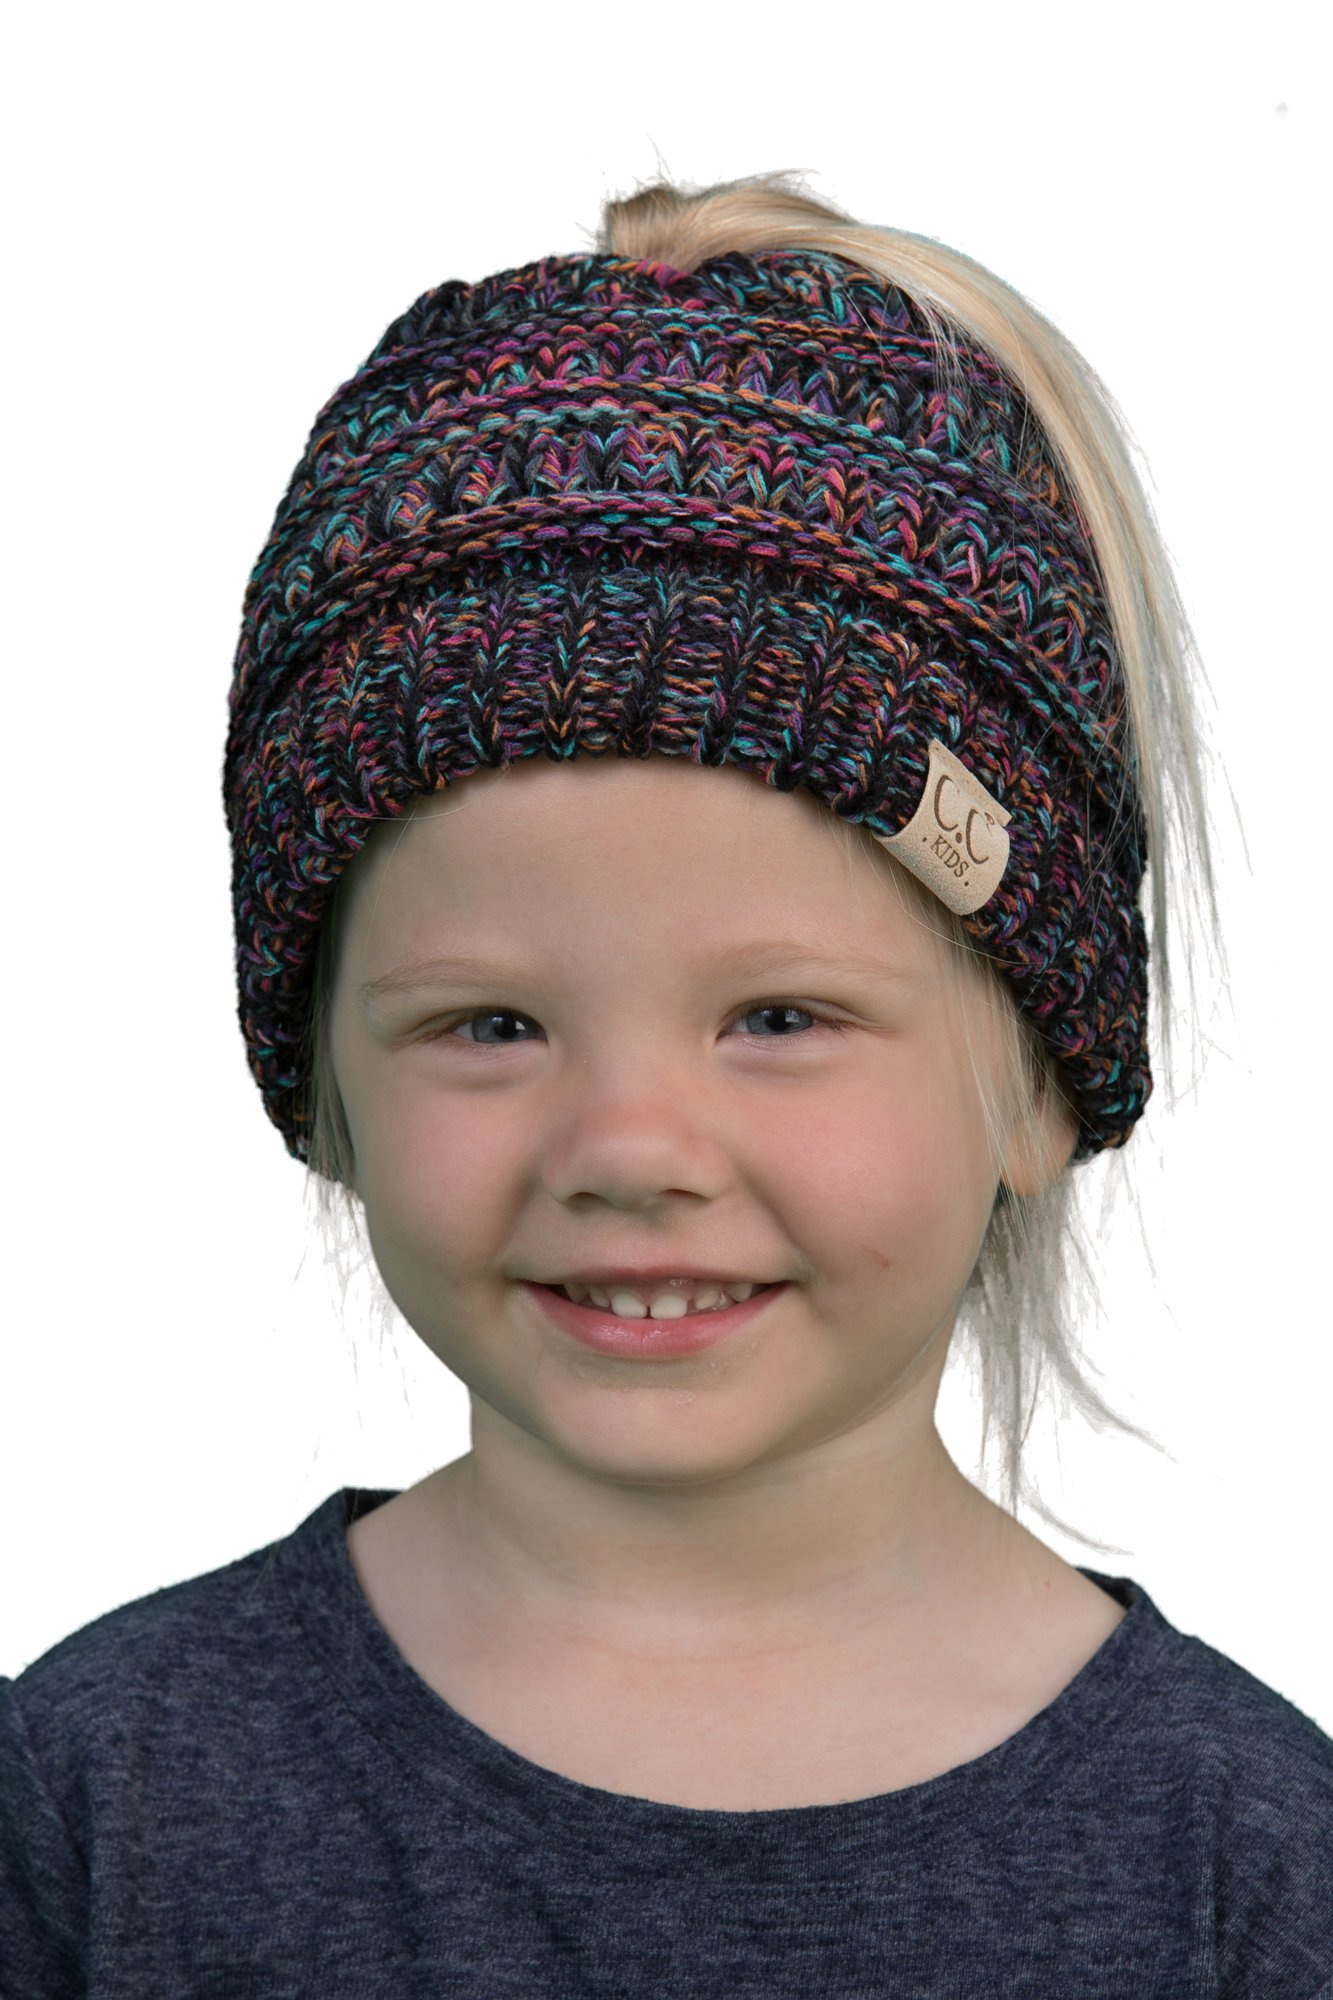 BT2-3847-816.0641 Kids Messy Bun Ponytail Hat Girls Beanie Tail - Kaleidoscope